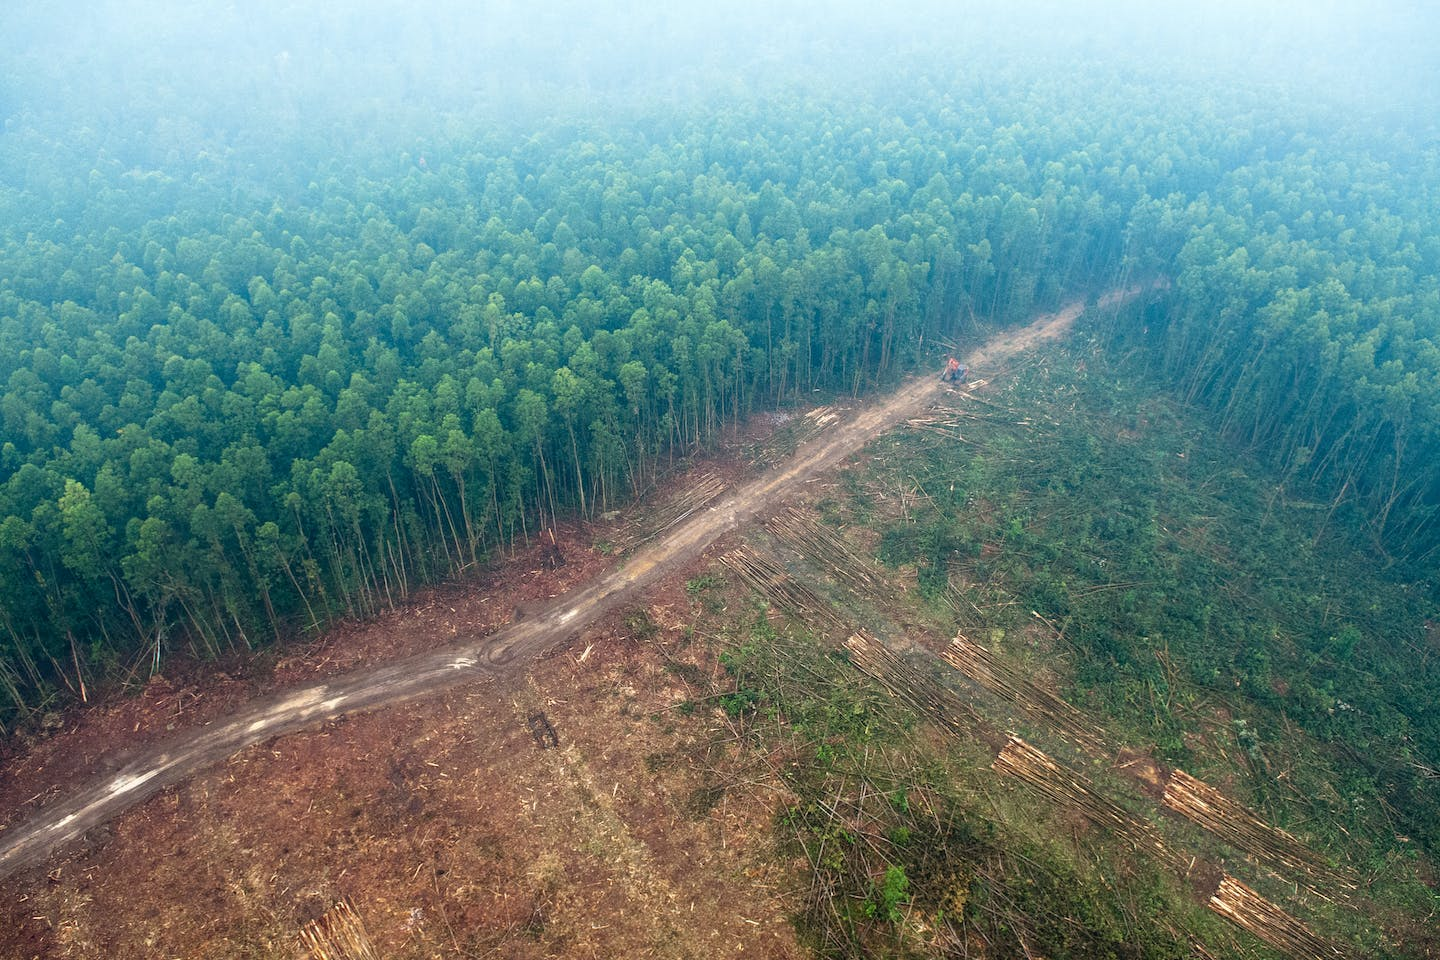 deforestation imports impact Indonesia's forests